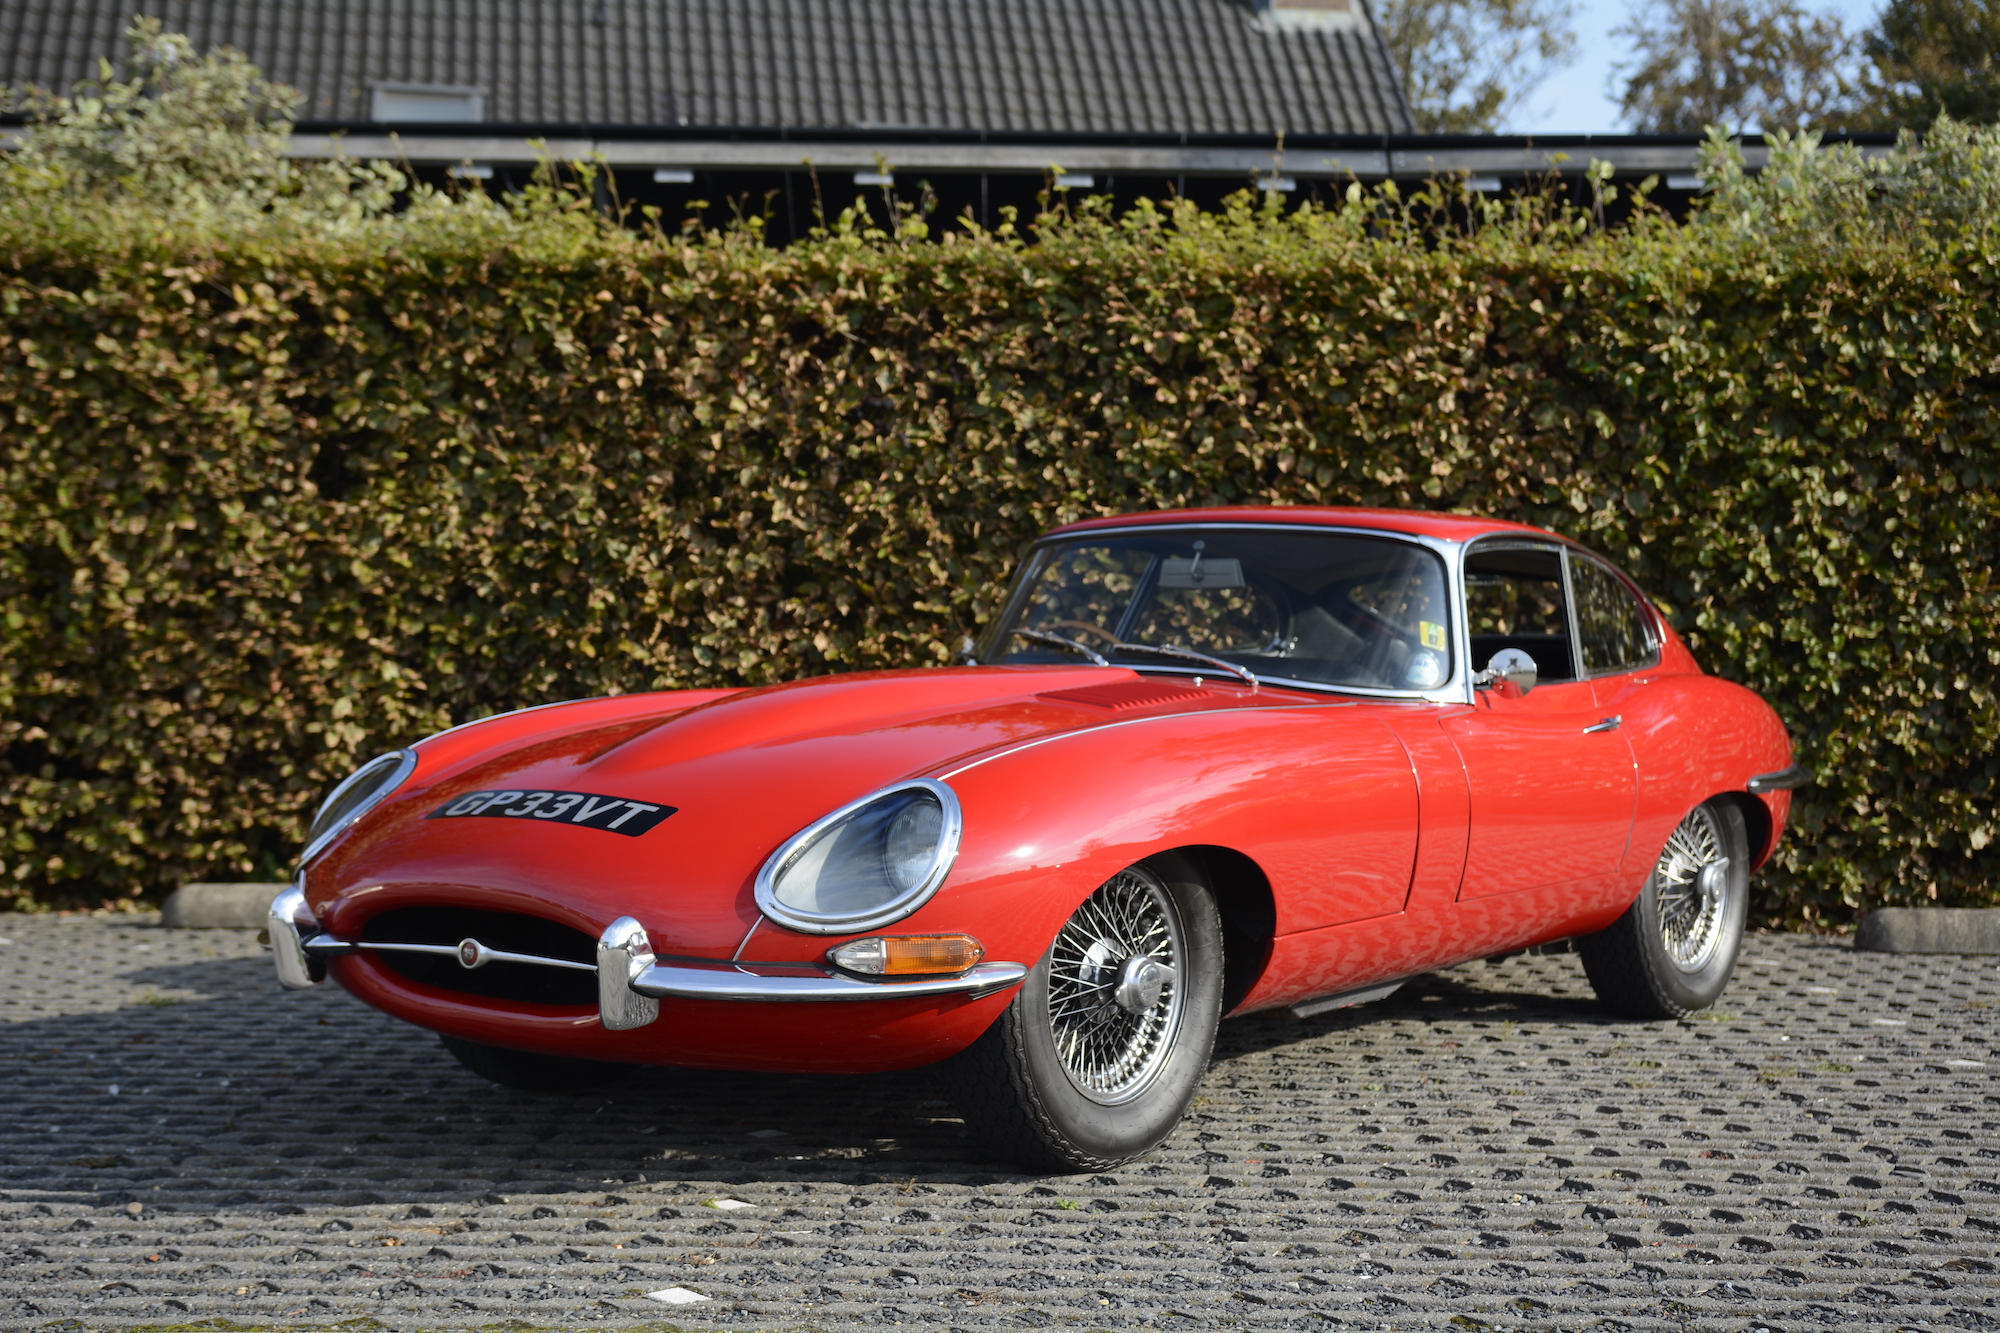 1968 JAGUAR E-TYPE SERIES 1 4.2 FHC